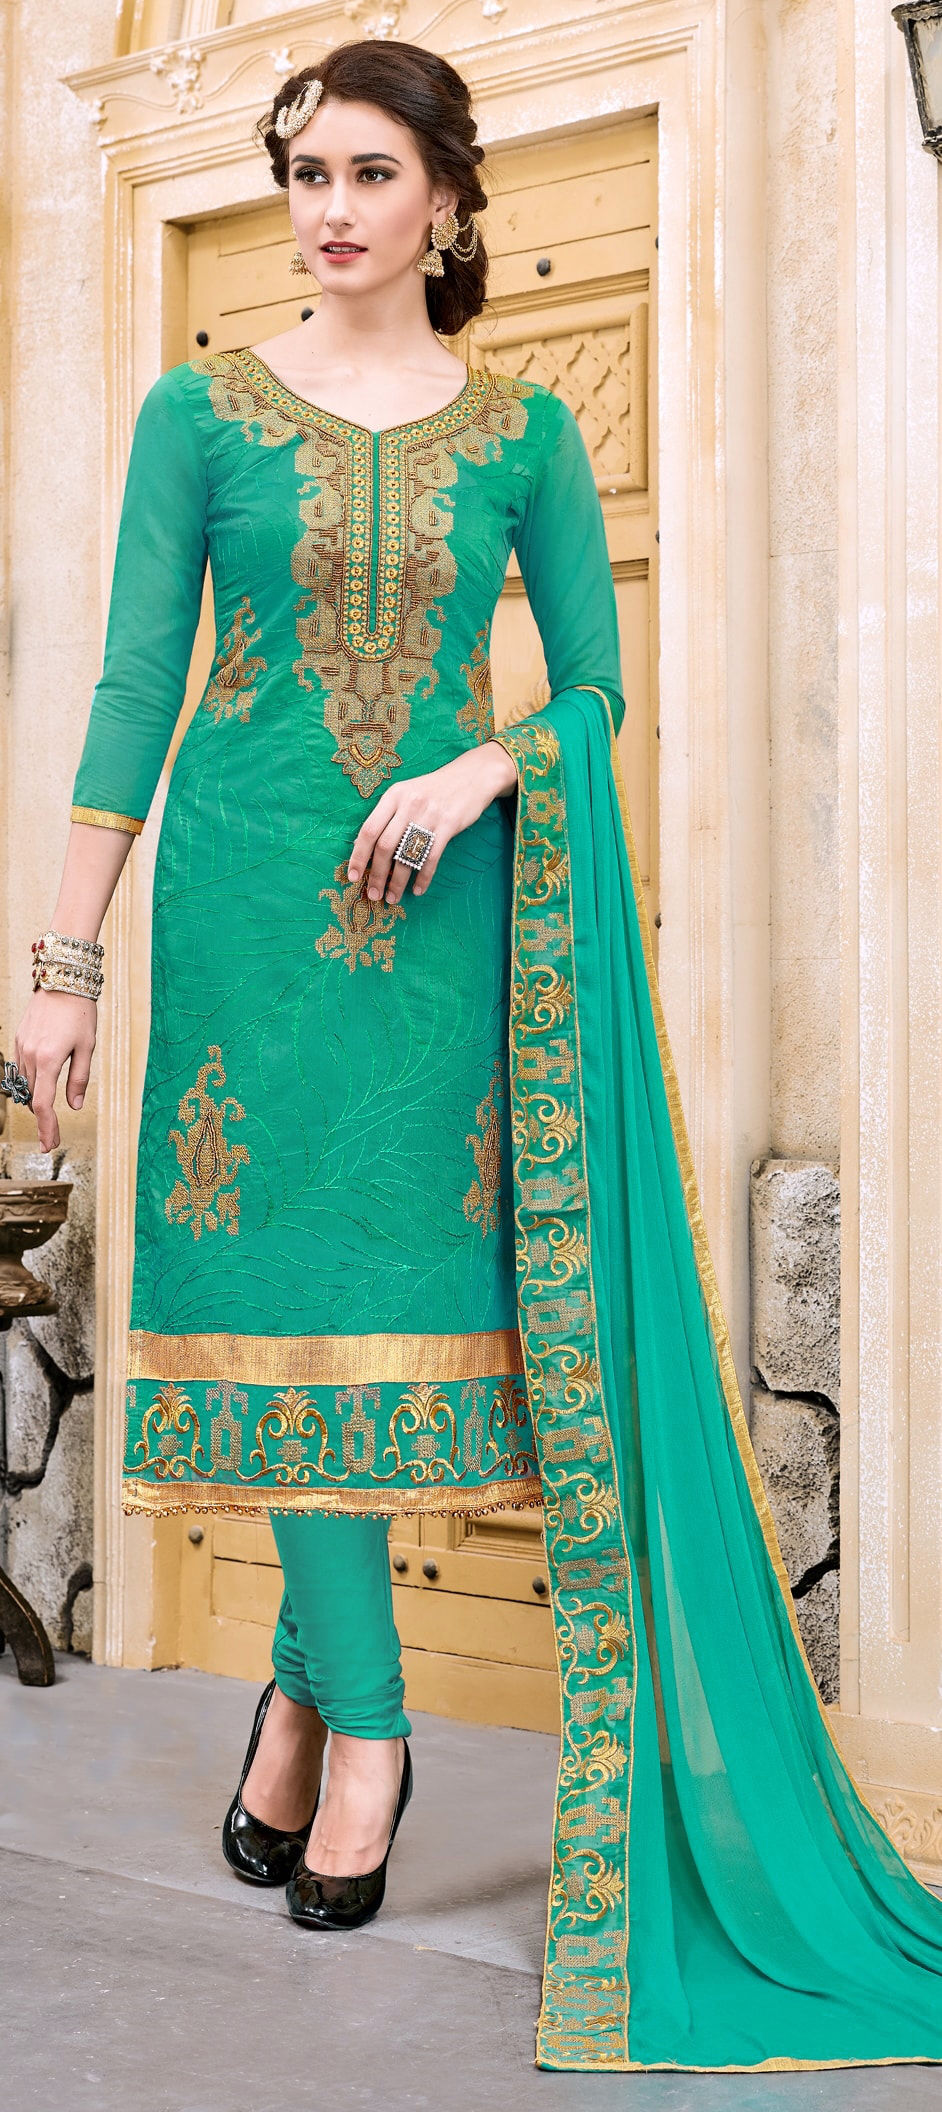 Cotton Bollywood Salwar Kameez in Blue with Resham work